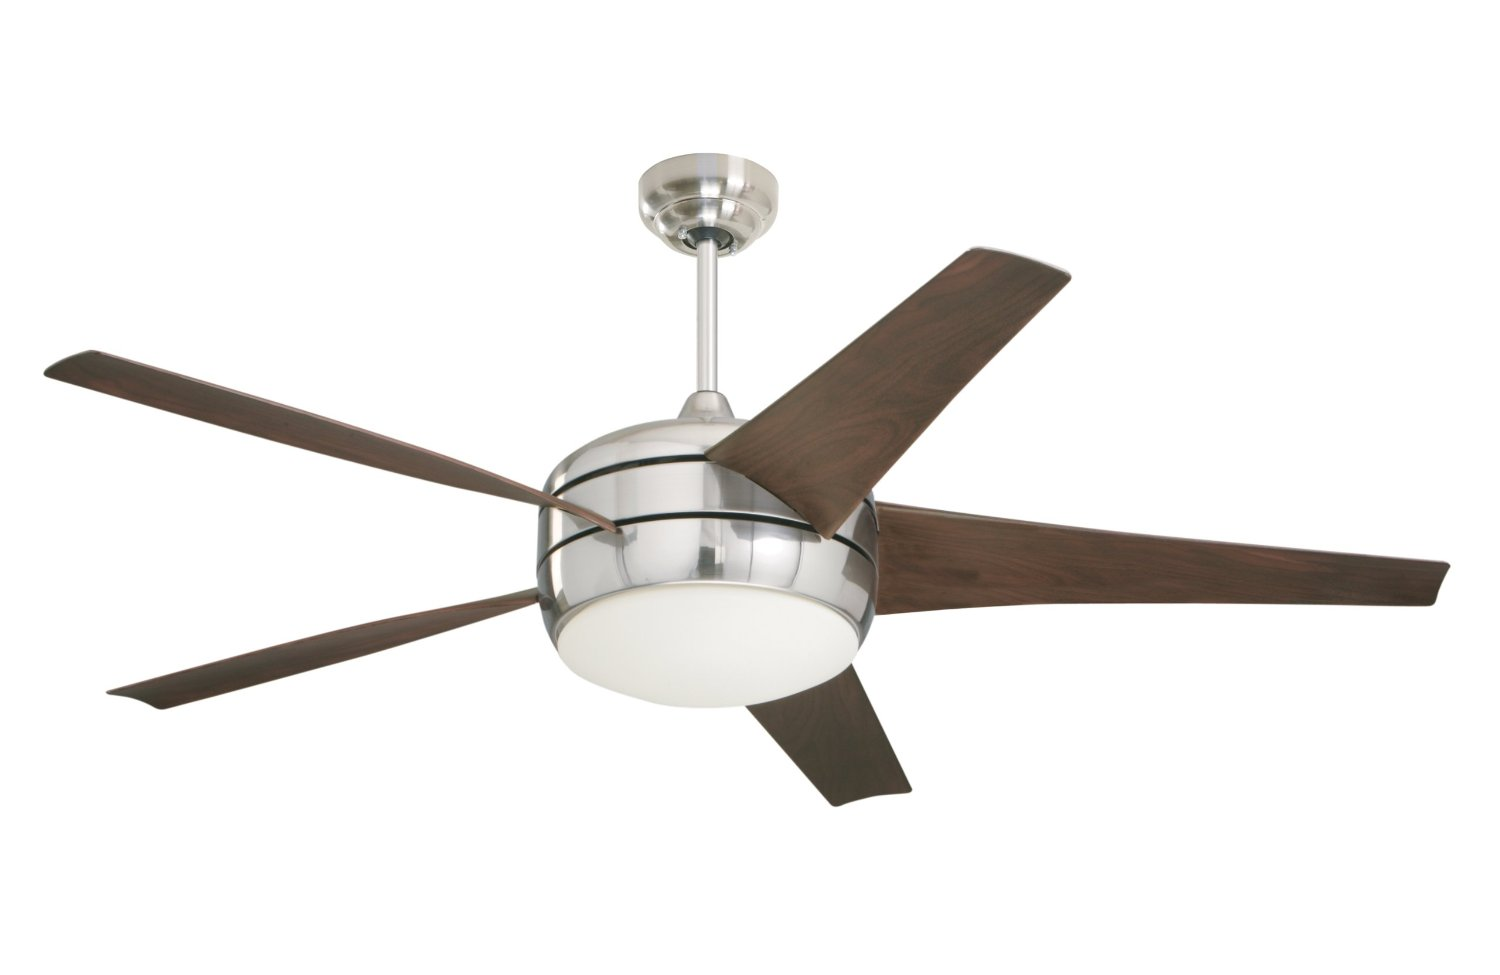 Large Indoor Fans Best Ceiling Fans Reviews Buying Guide And Comparison 2019